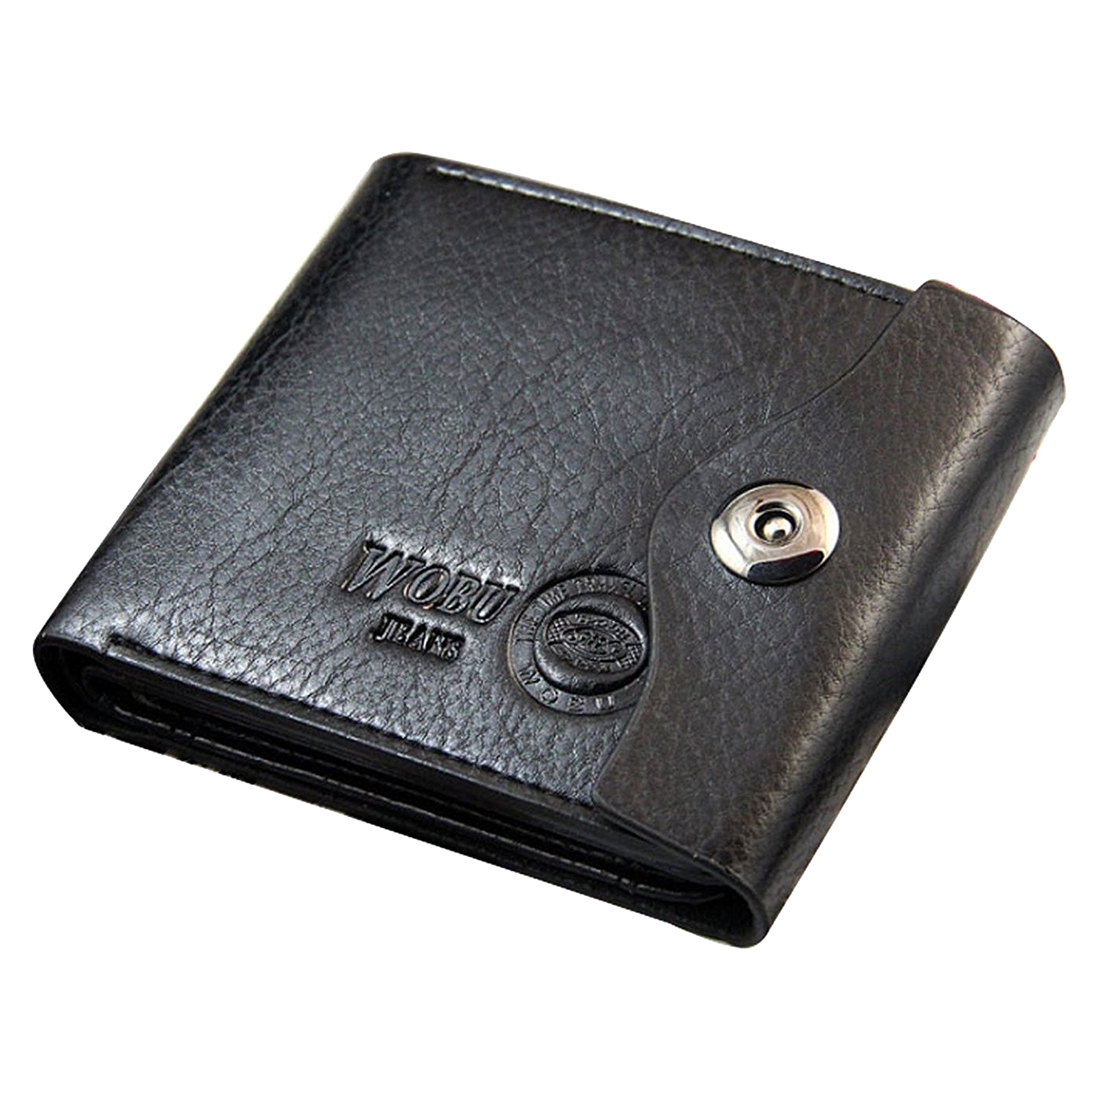 WOBU High Quality Mens Leather Wallet with Credit Card Holder,Purse (Black) star wars purse high quality leather